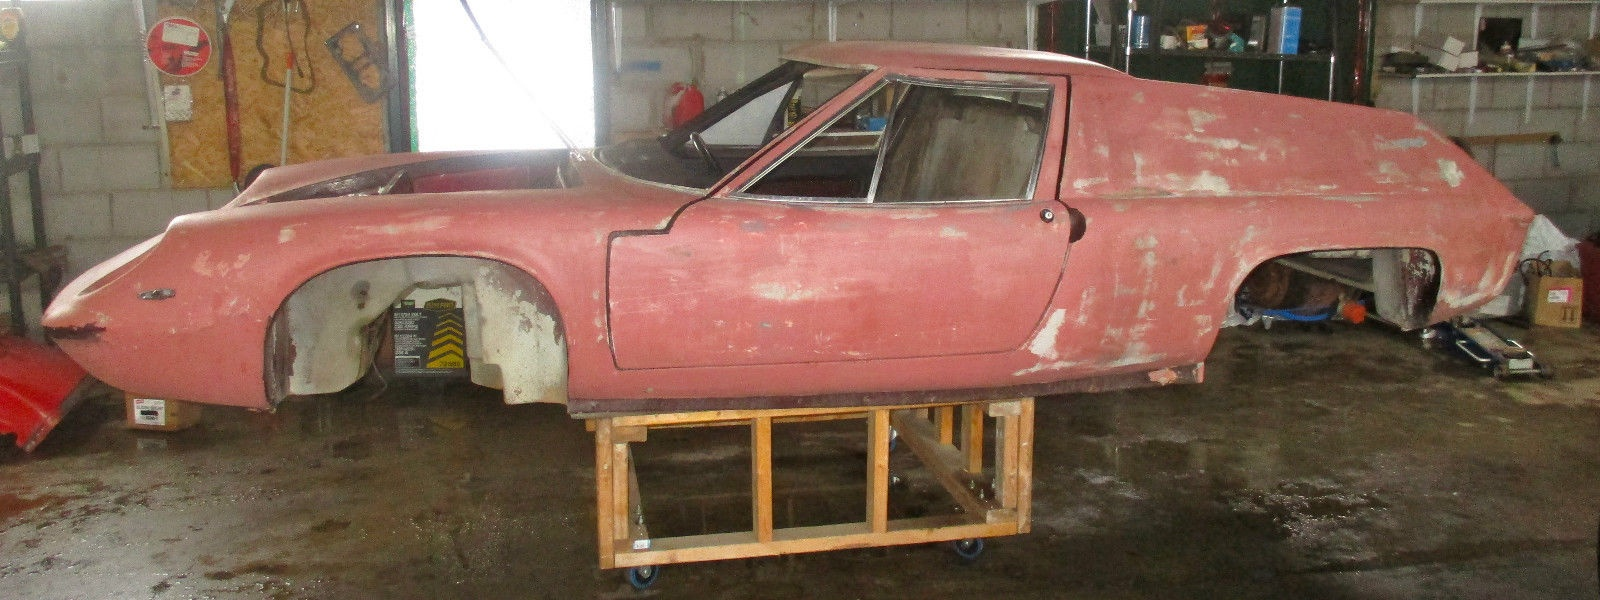 some assembly required 1969 lotus europa s2. Black Bedroom Furniture Sets. Home Design Ideas